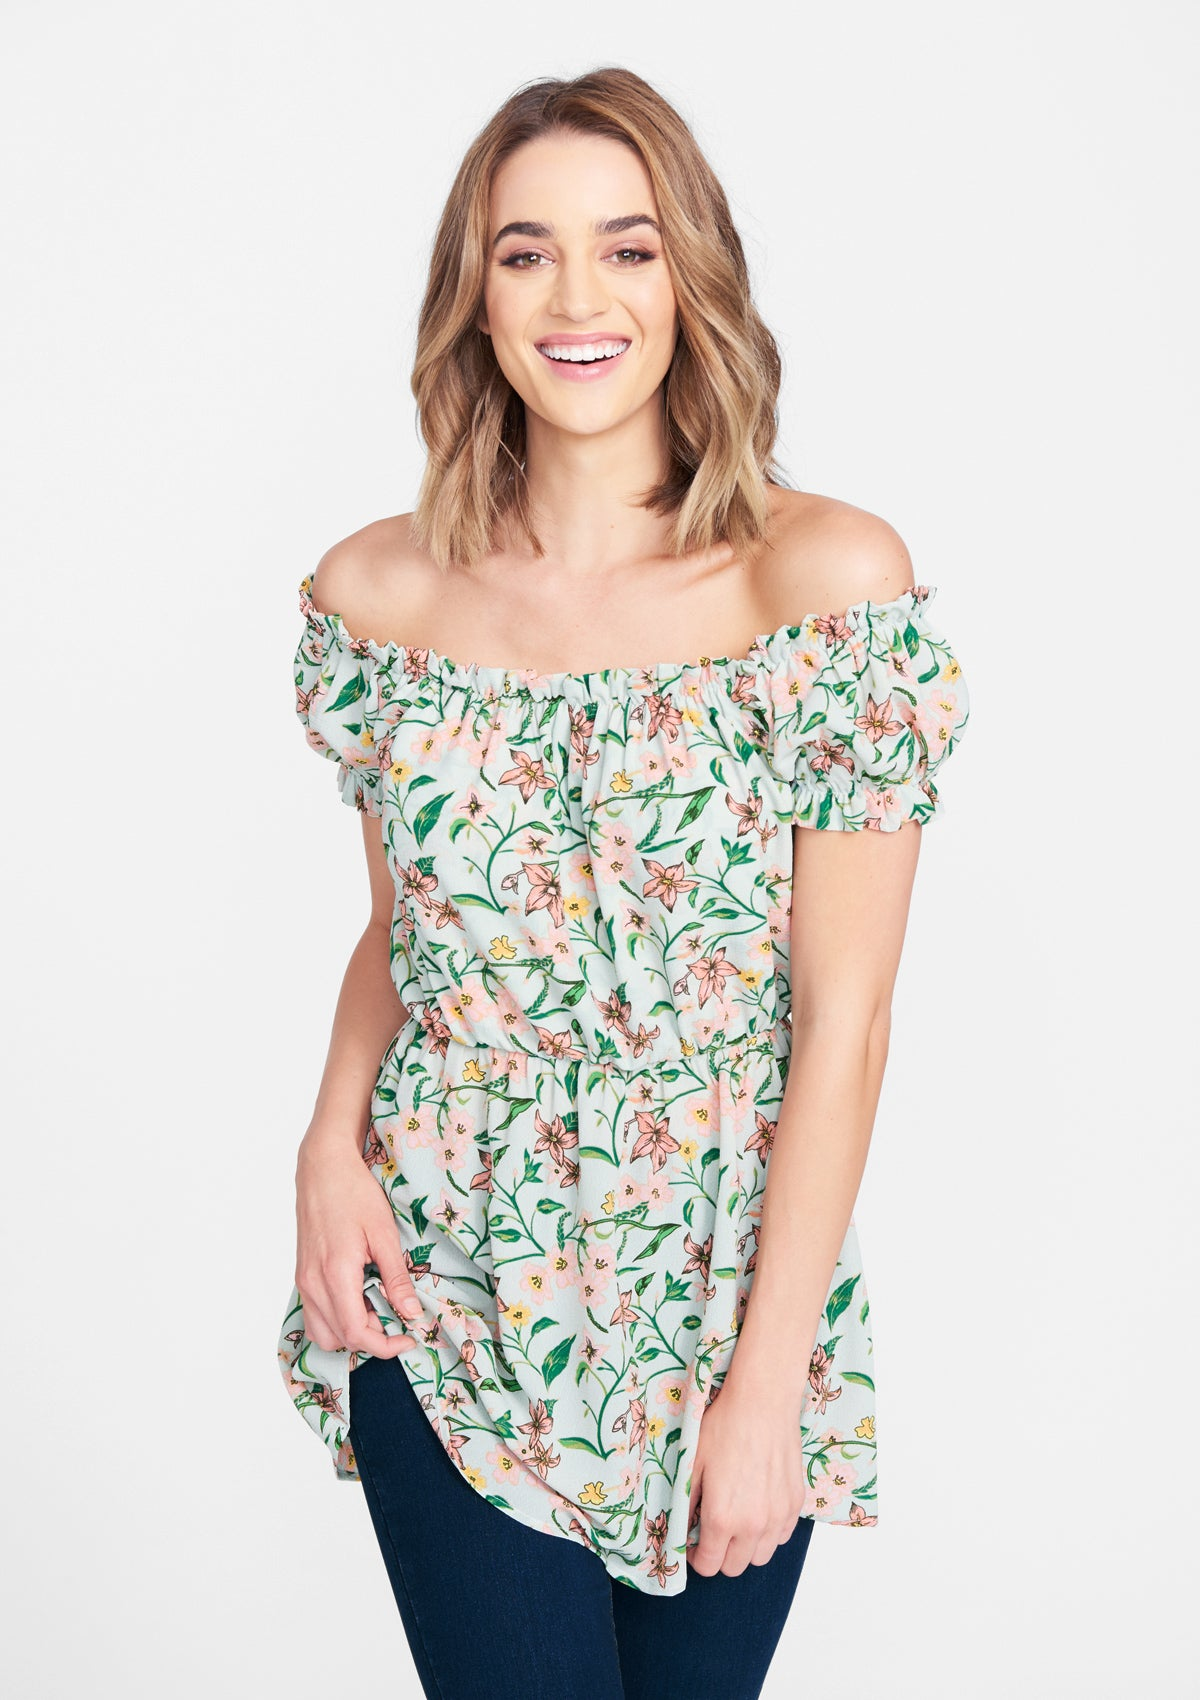 Alloy Apparel Tall Drop Shoulder Blouse for Women in Dark Sage Floral Size XL   Polyester